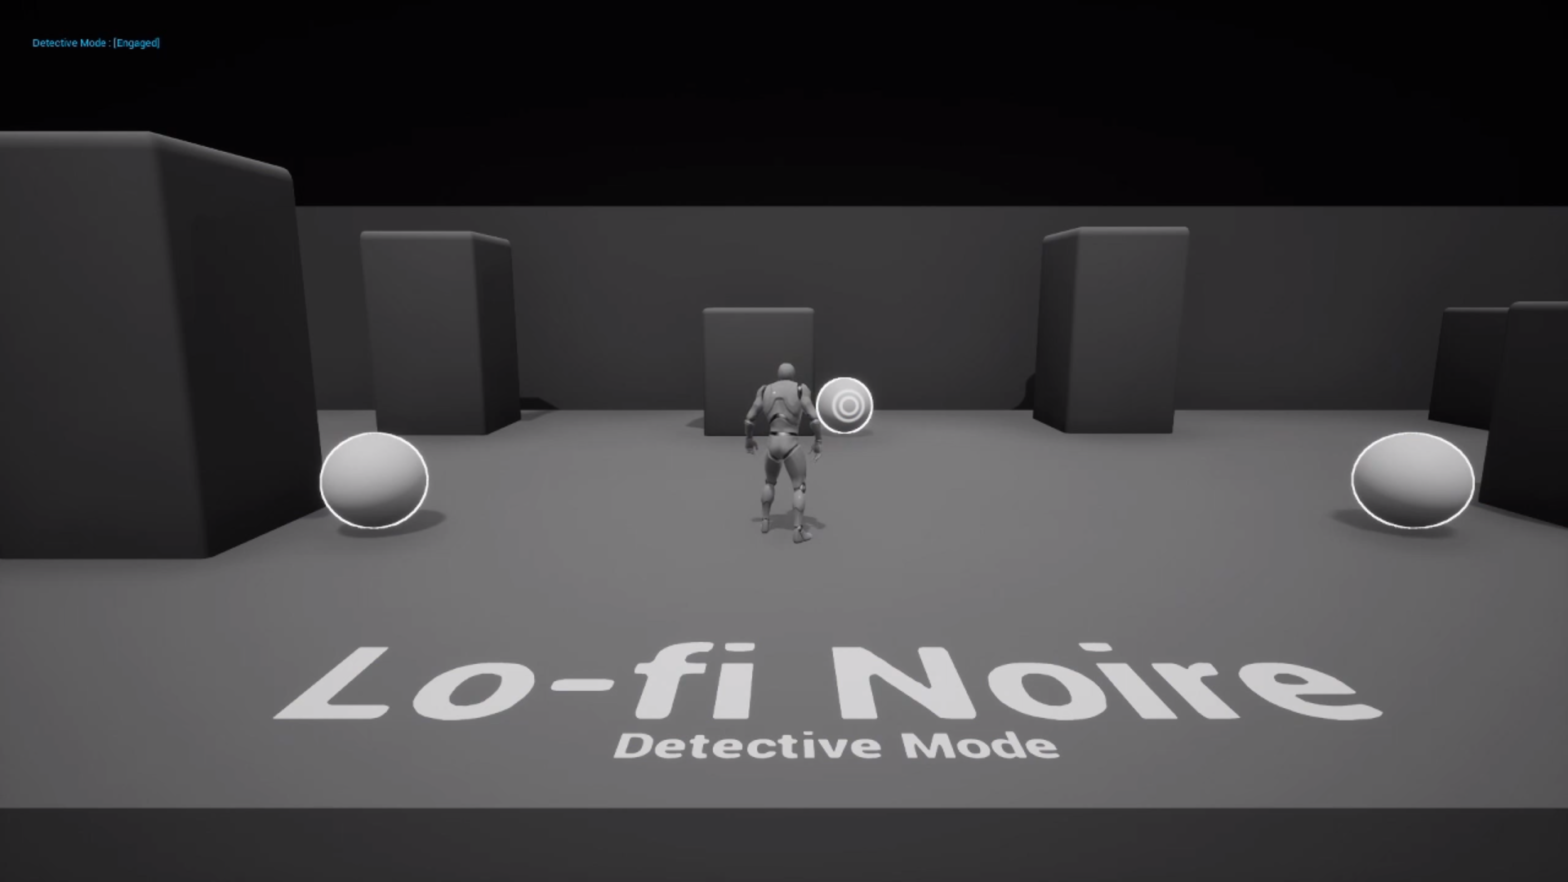 Systems Concept 1 : Detective Mode